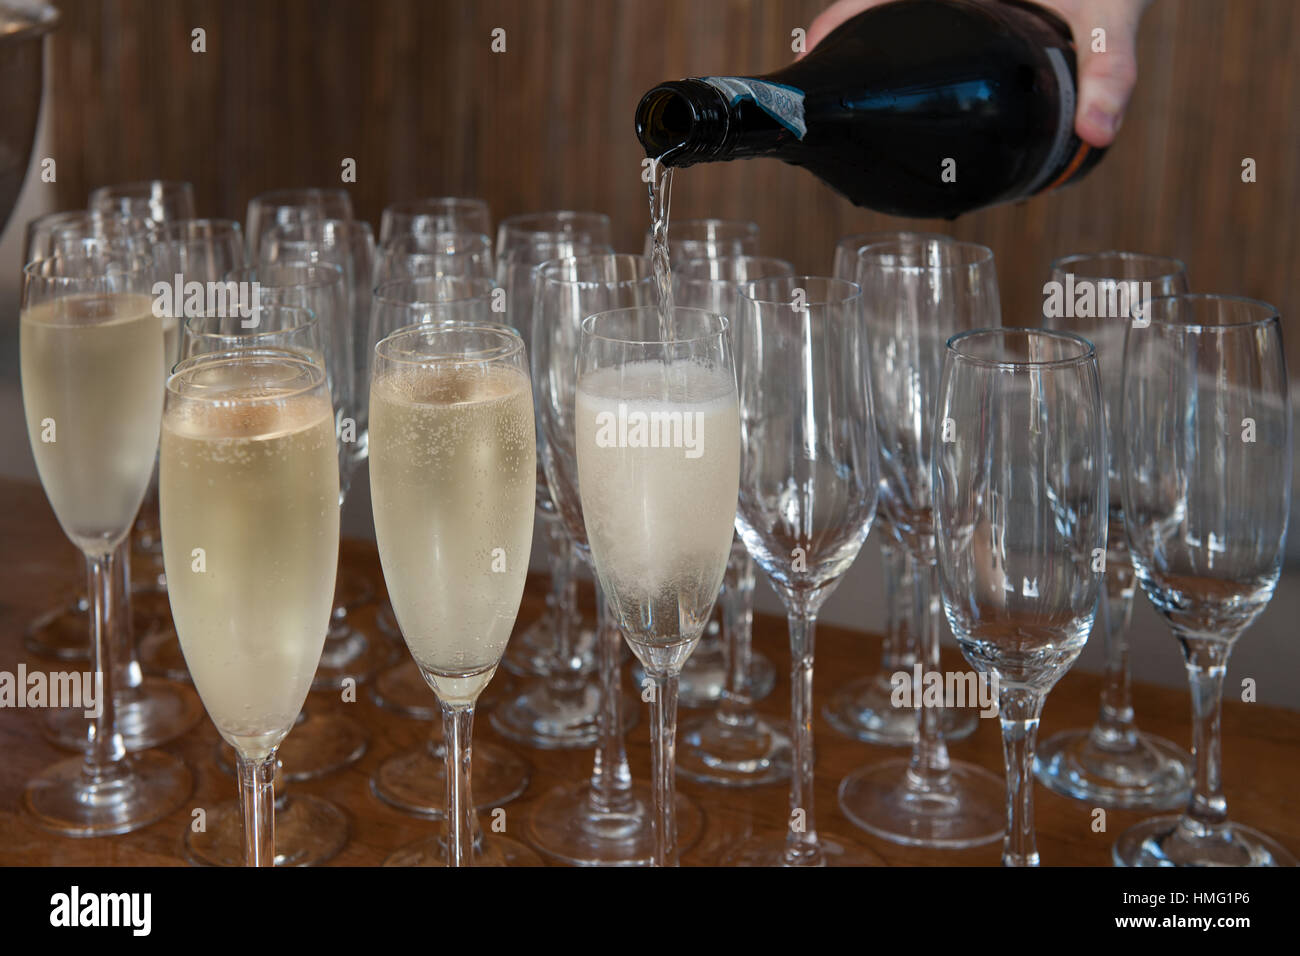 A closeup crop of a hand holding a prosecco bottle and pouring the prosecco into champagne flutes on a wooden table - Stock Image